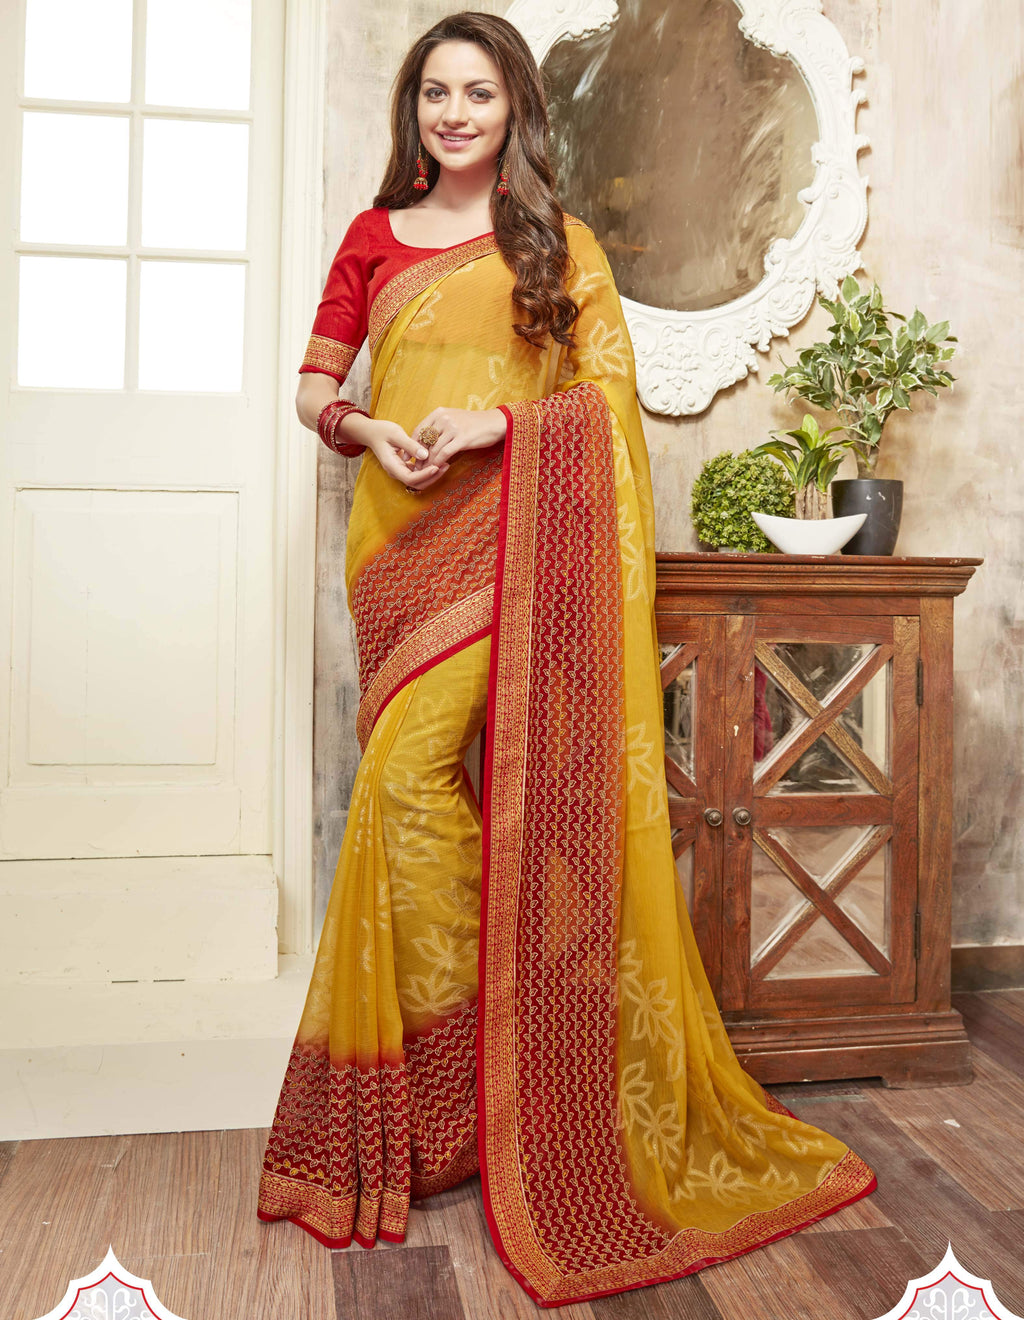 Yellow & Red Color Wrinkle Chiffon Brasso Designer Function Wear Sarees : Gaurika Collection  NYF-1364 - YellowFashion.in